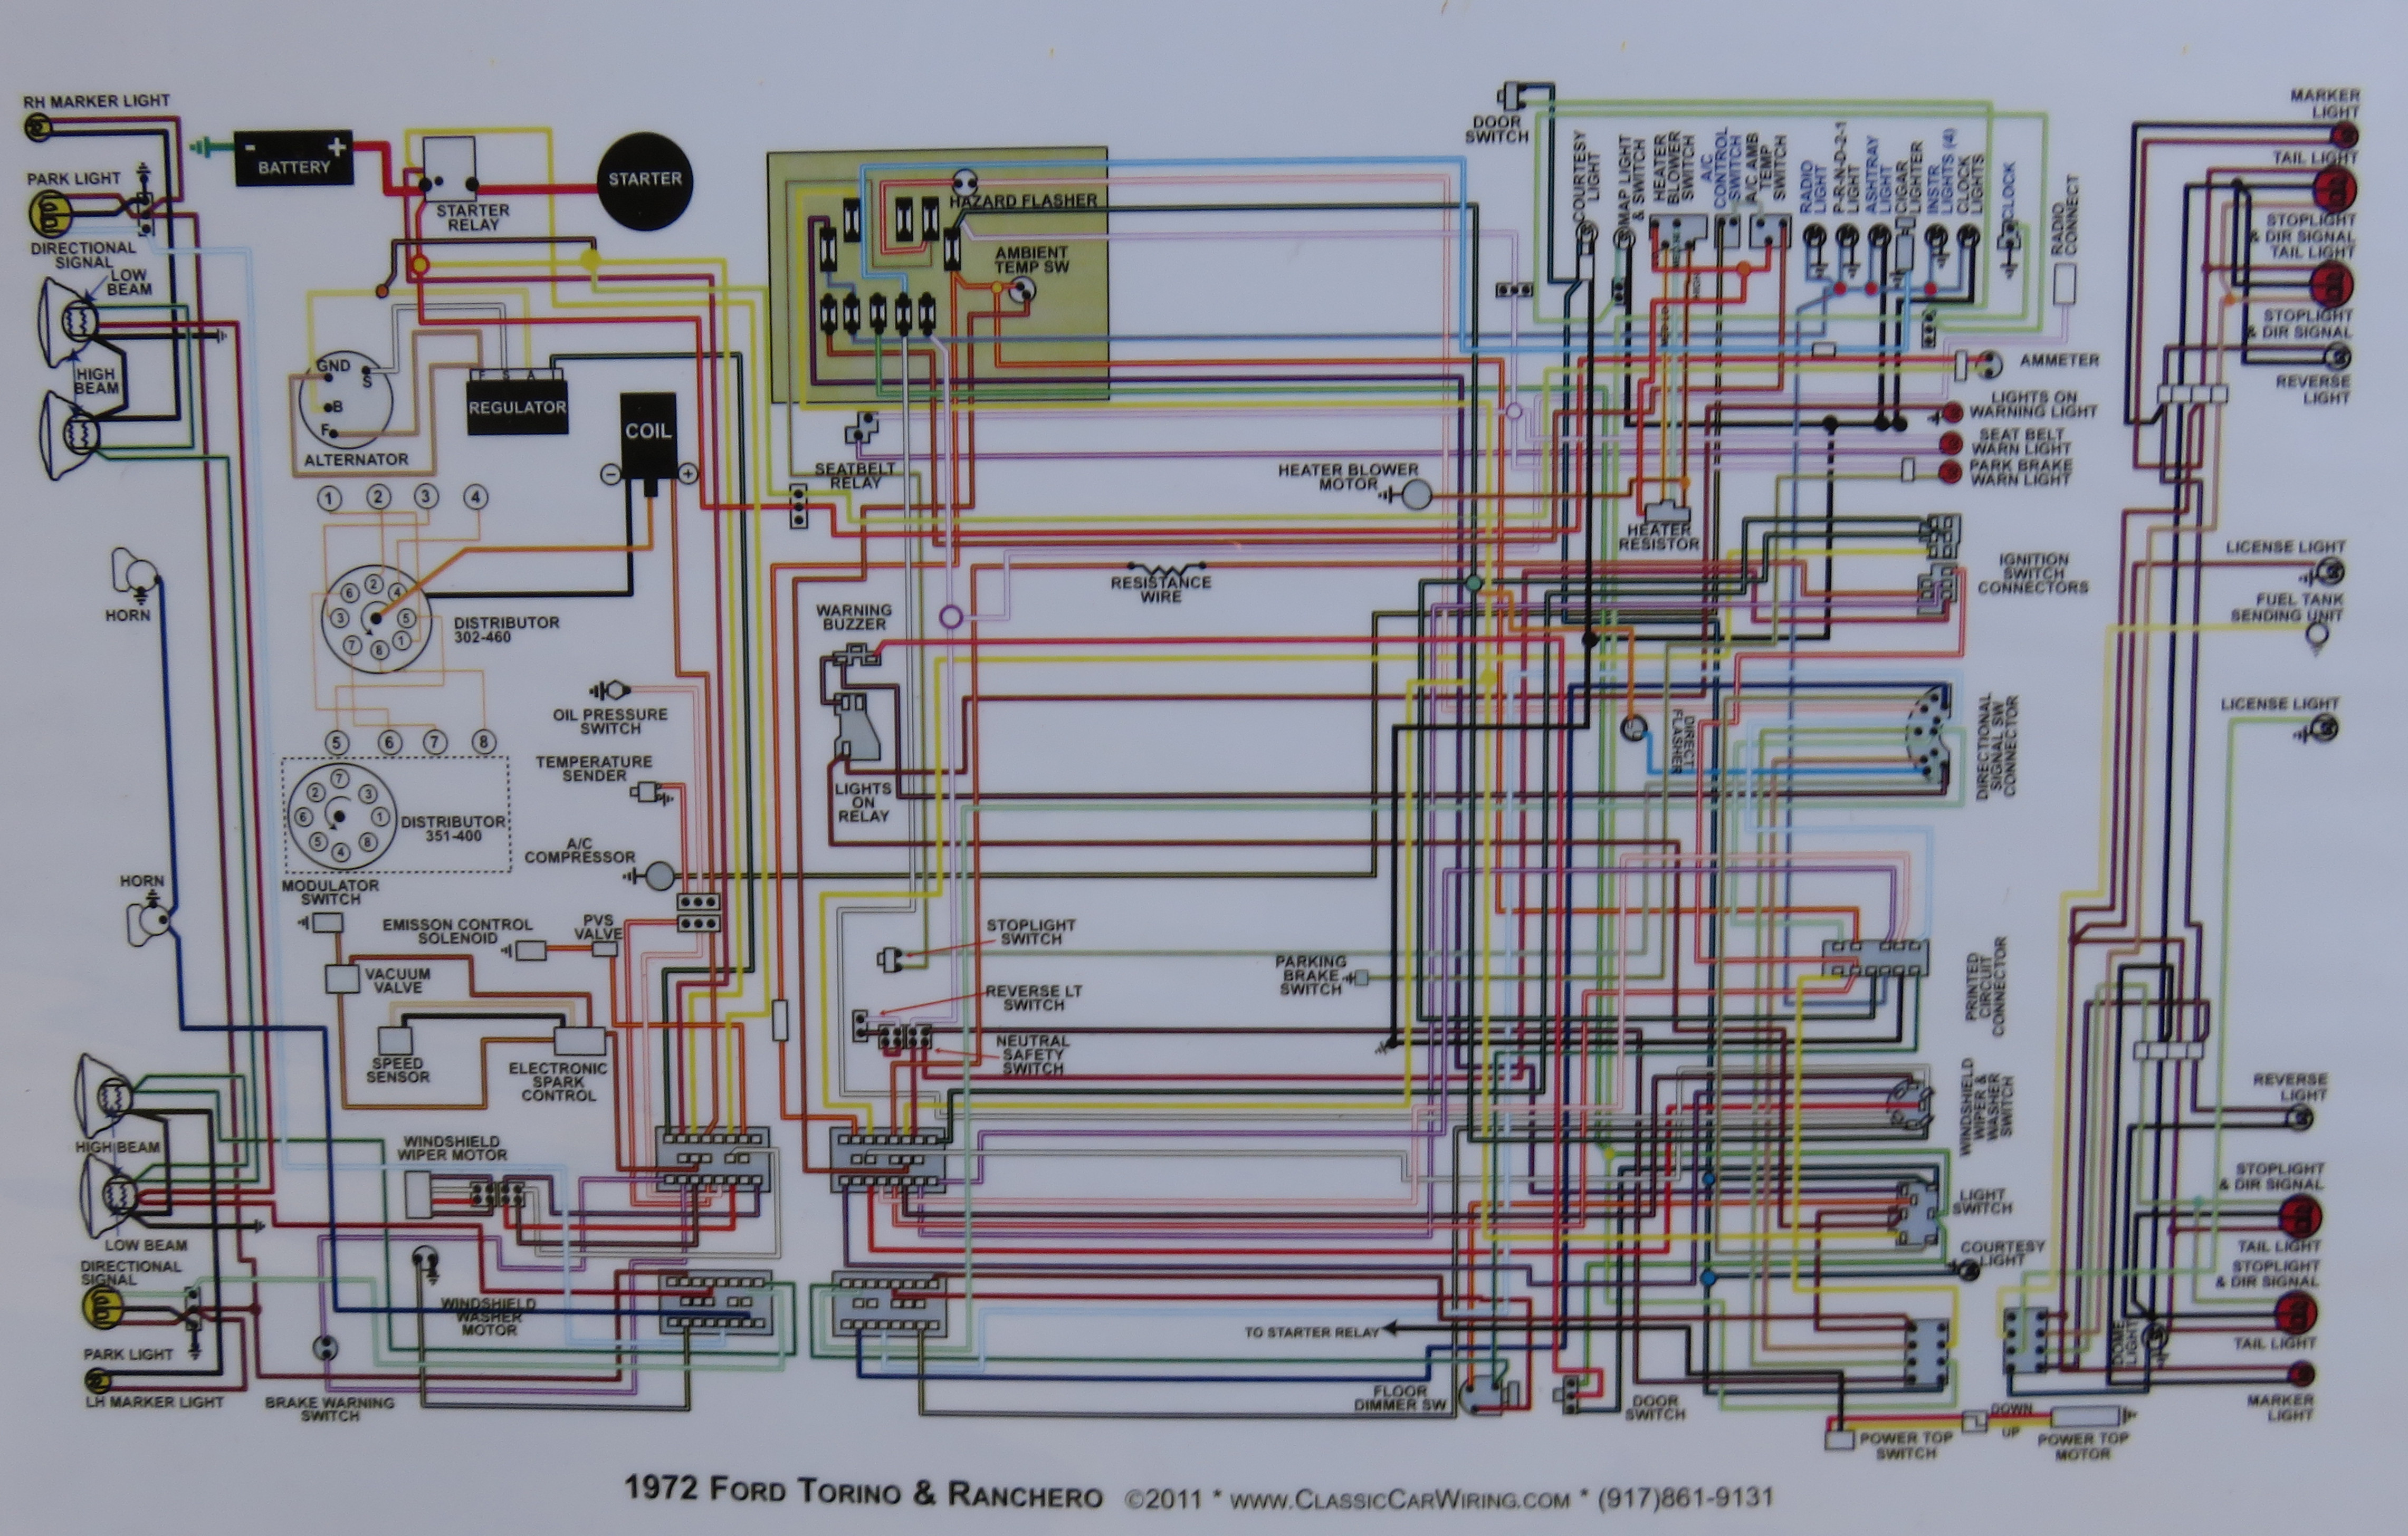 wiring diagram?quality\\\\\\\\\\\=80\\\\\\\\\\\&strip\\\\\\\\\\\=all haier refrigerator wiring diagrams wiring diagrams haier mini fridge thermostat wiring diagram at gsmportal.co